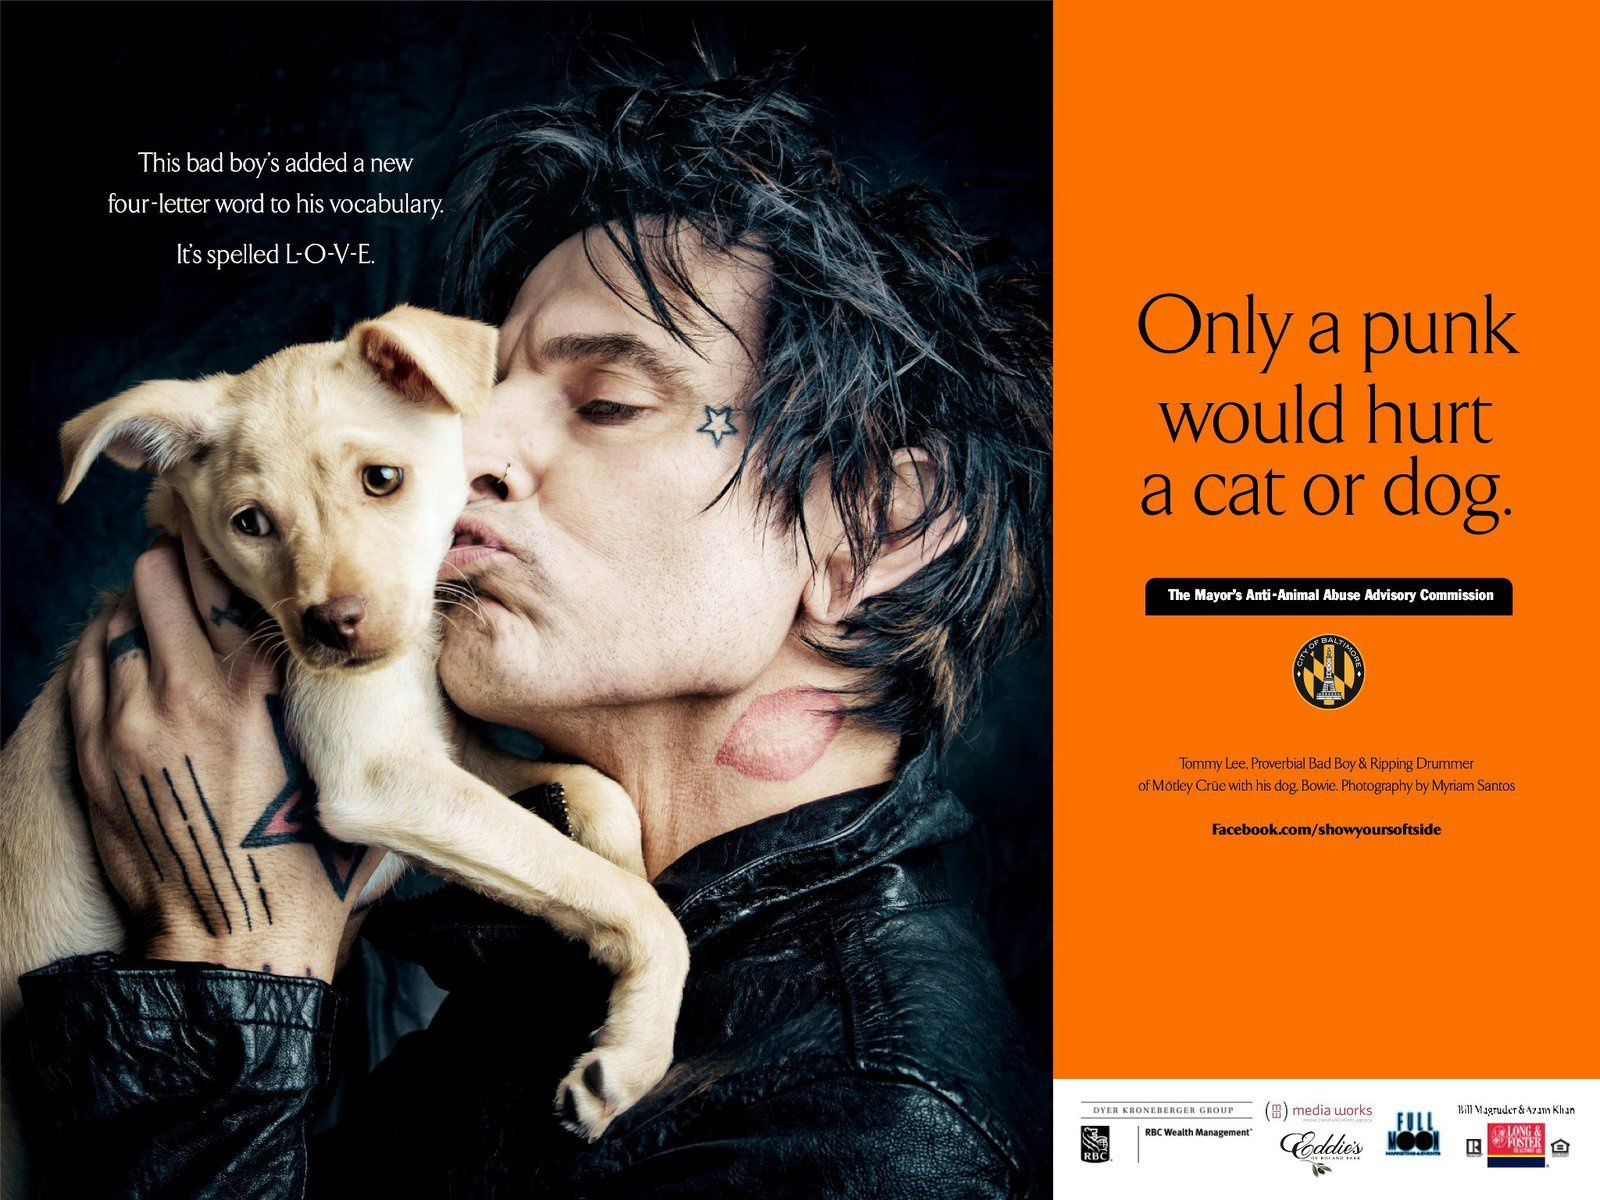 Tommy Lee, proverbial bad boy & ripping drummer of Motley Crue with his dog Bowie - Photography by Myriam Santos.